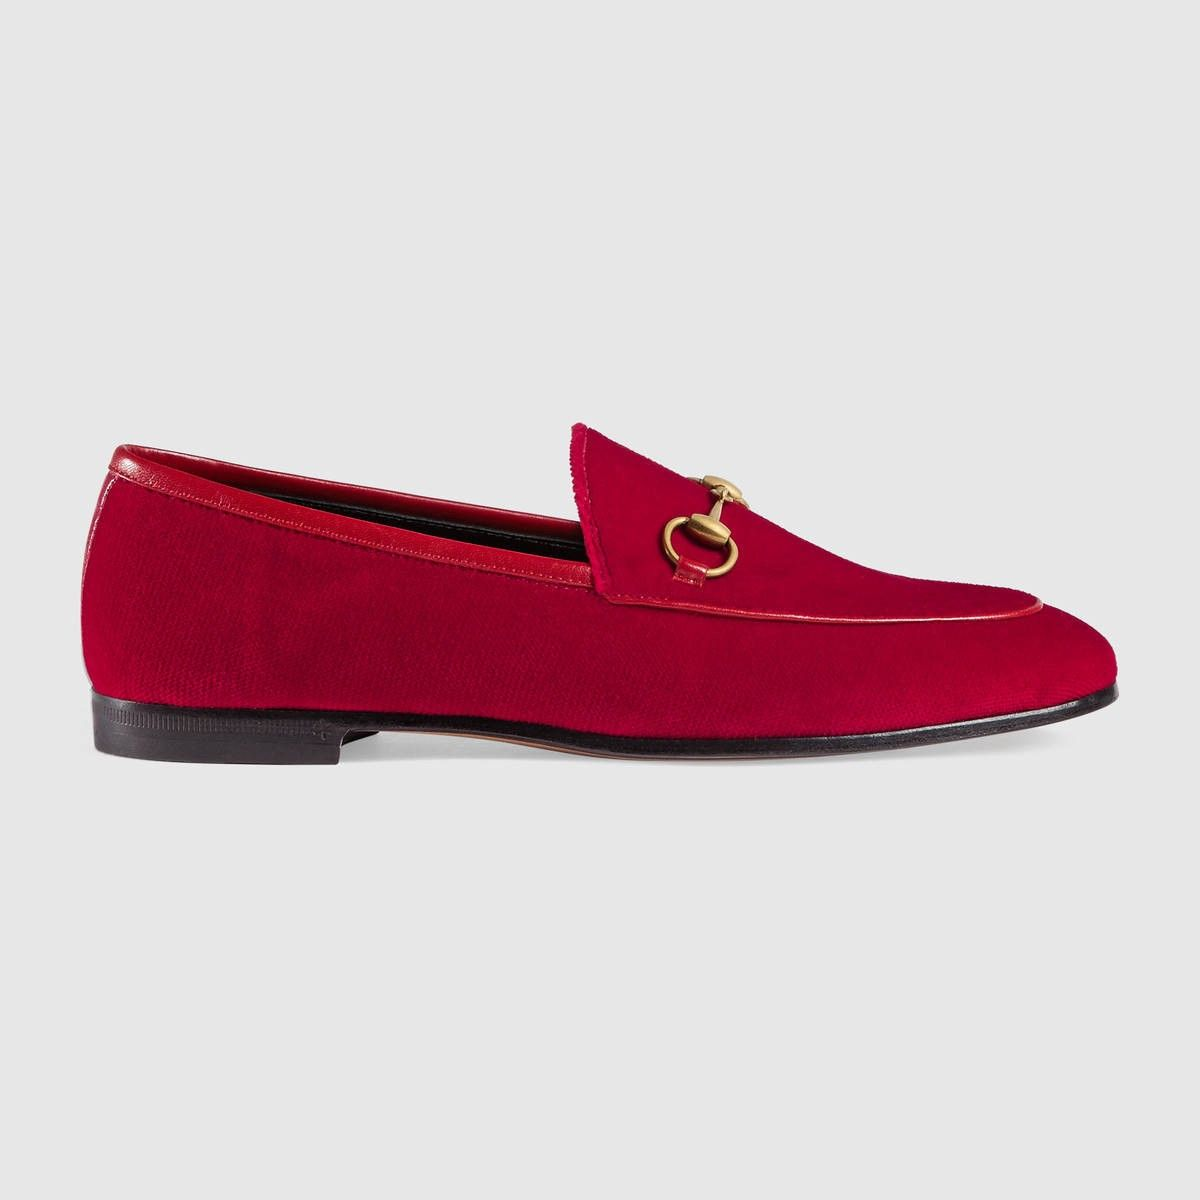 bd21a966b4d9 GUCCI Gucci Jordaan velvet loafer - hibiscus red velvet.  gucci  shoes